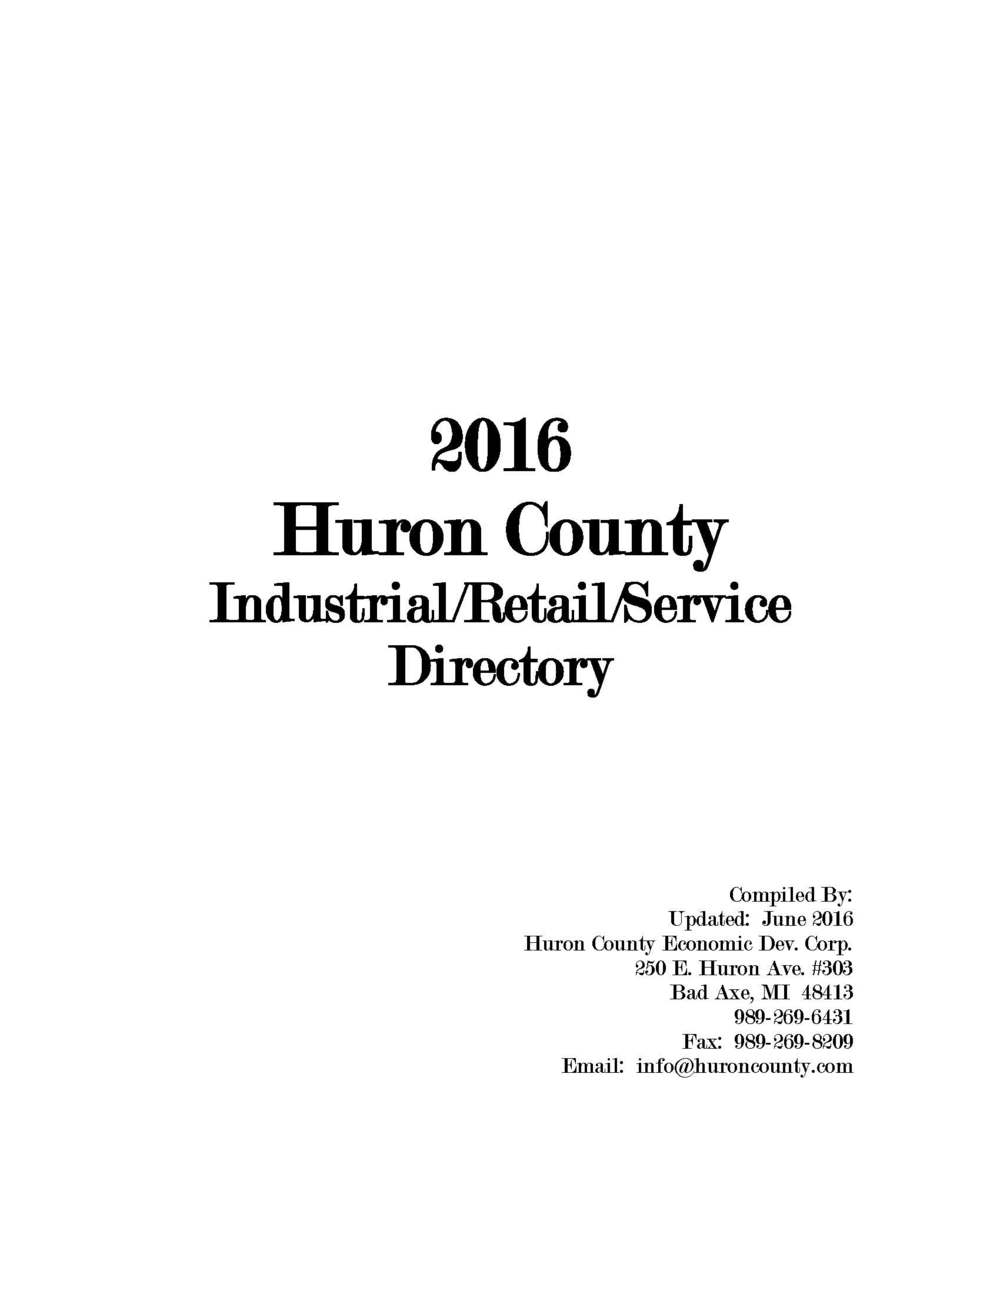 2015 Huron County Industrial/Retail/Service Directory